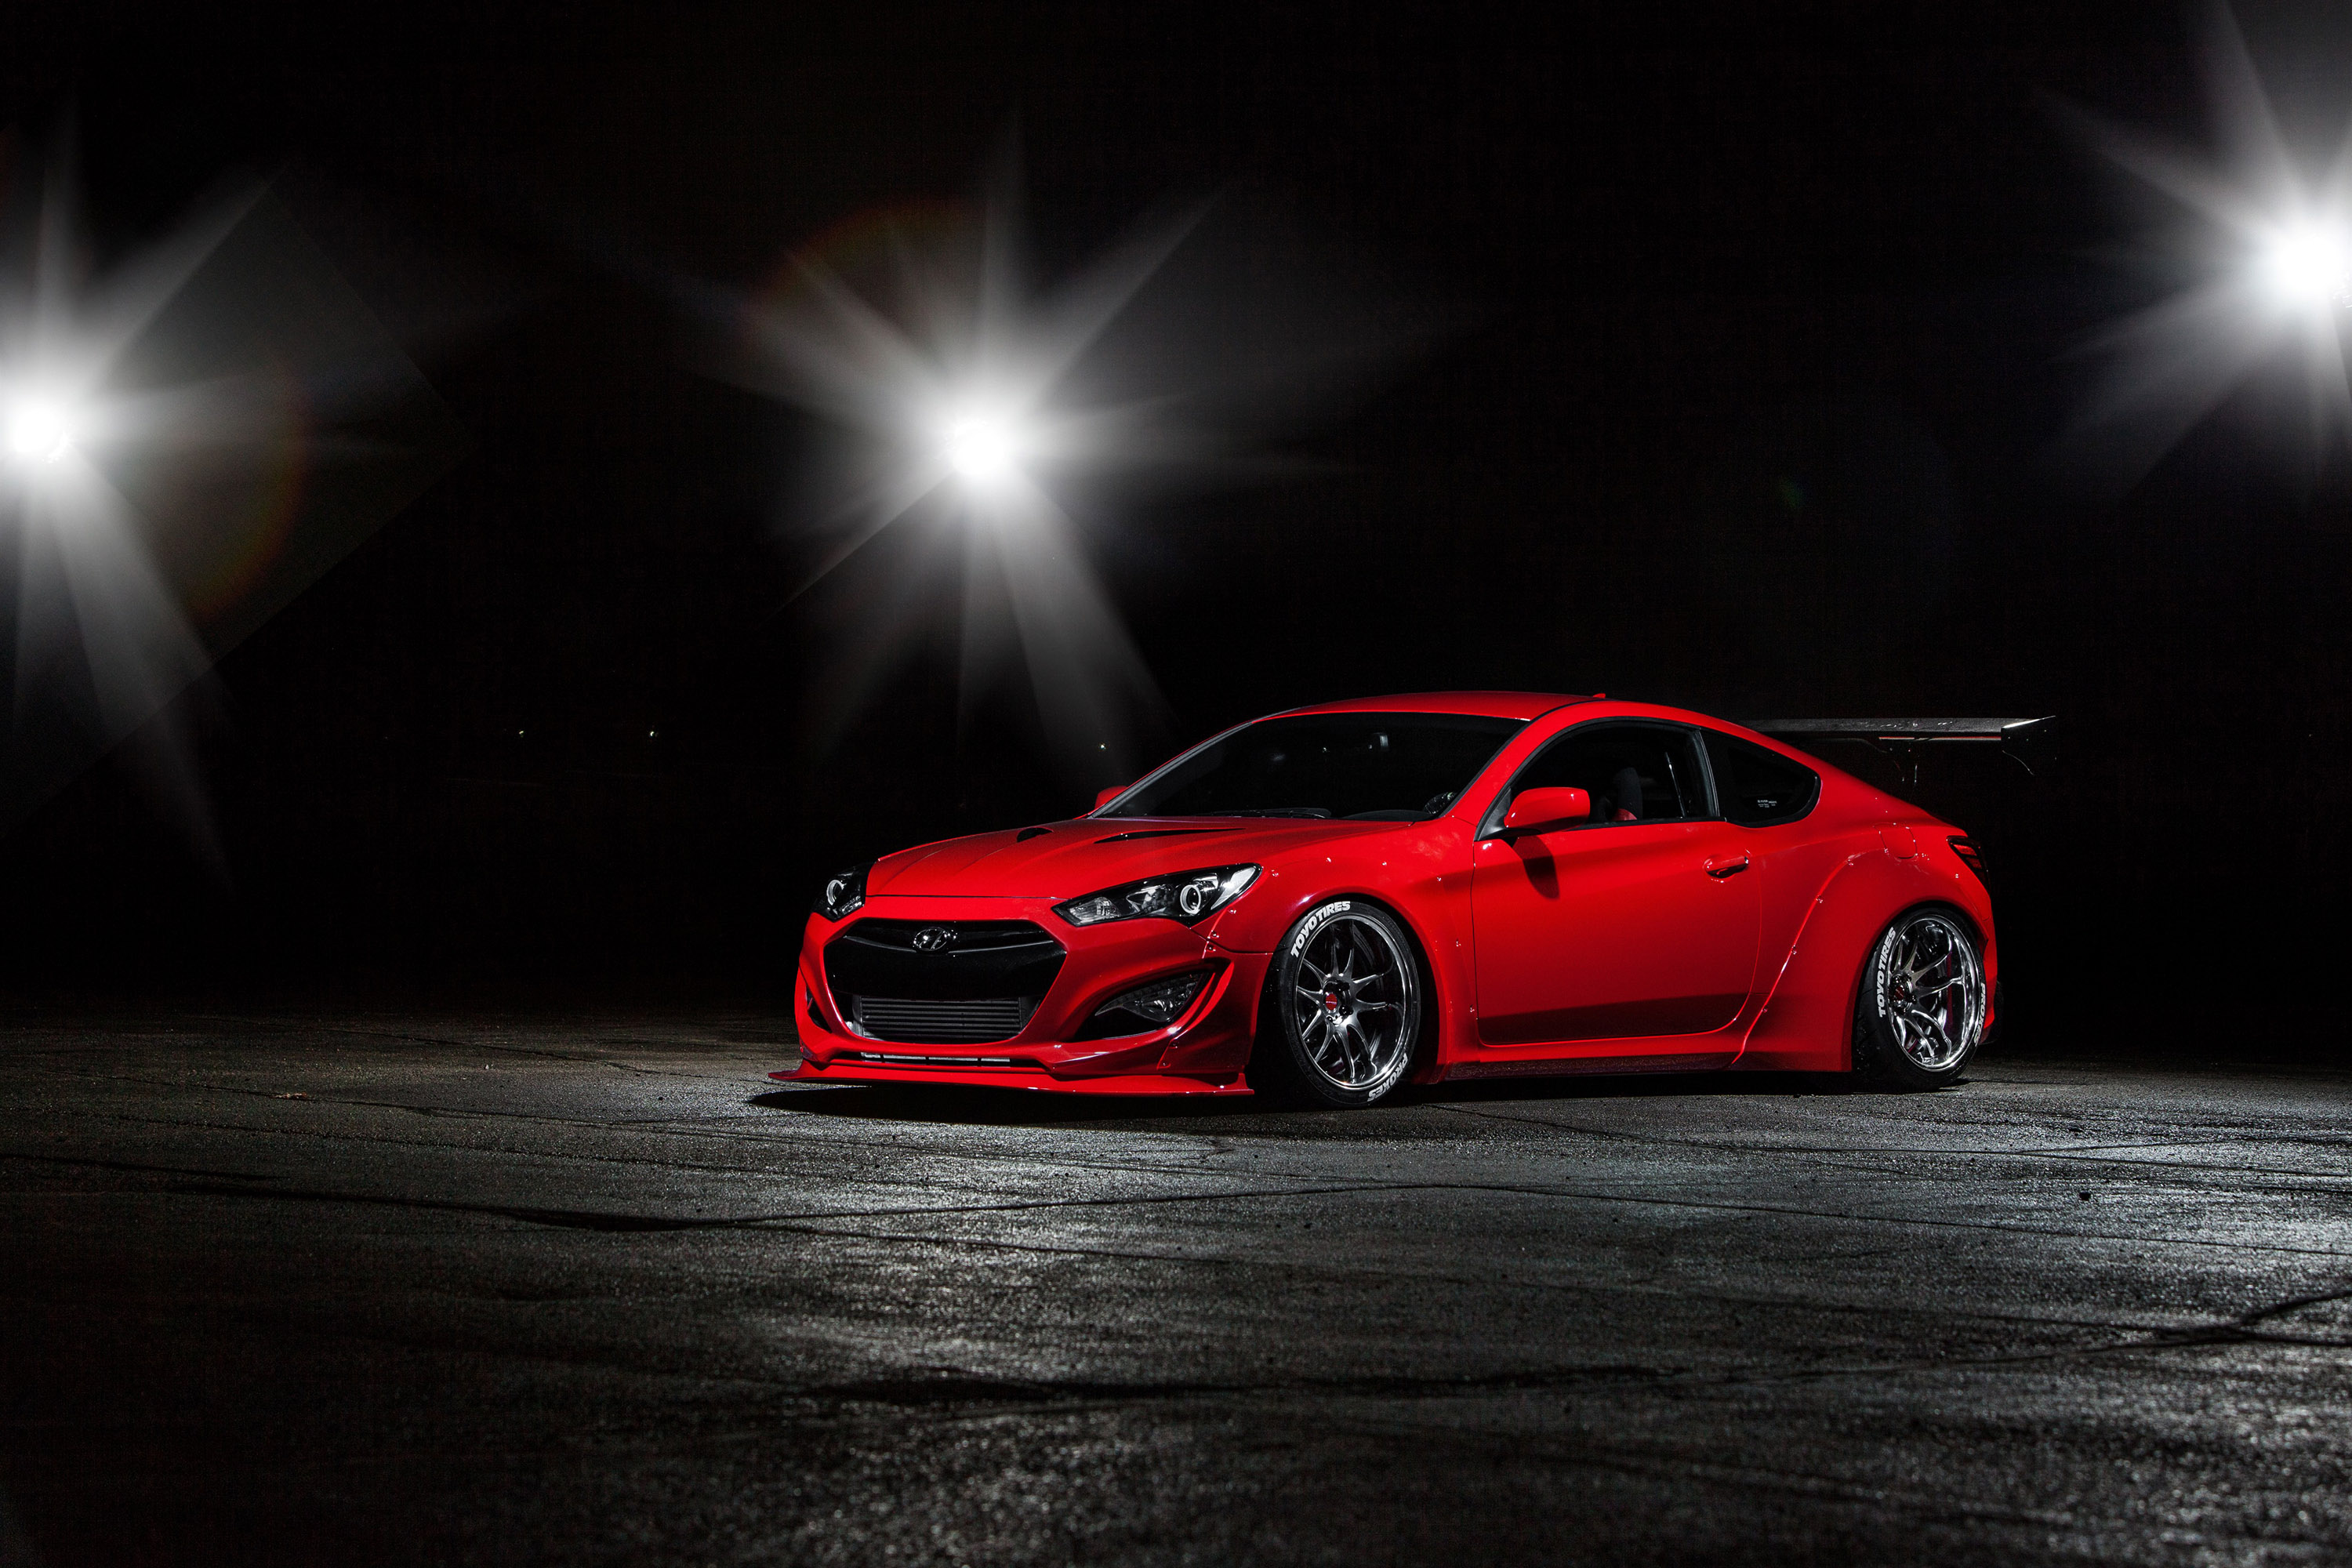 Btr Hyundai Genesis Coupe In Preparation For Sema Show